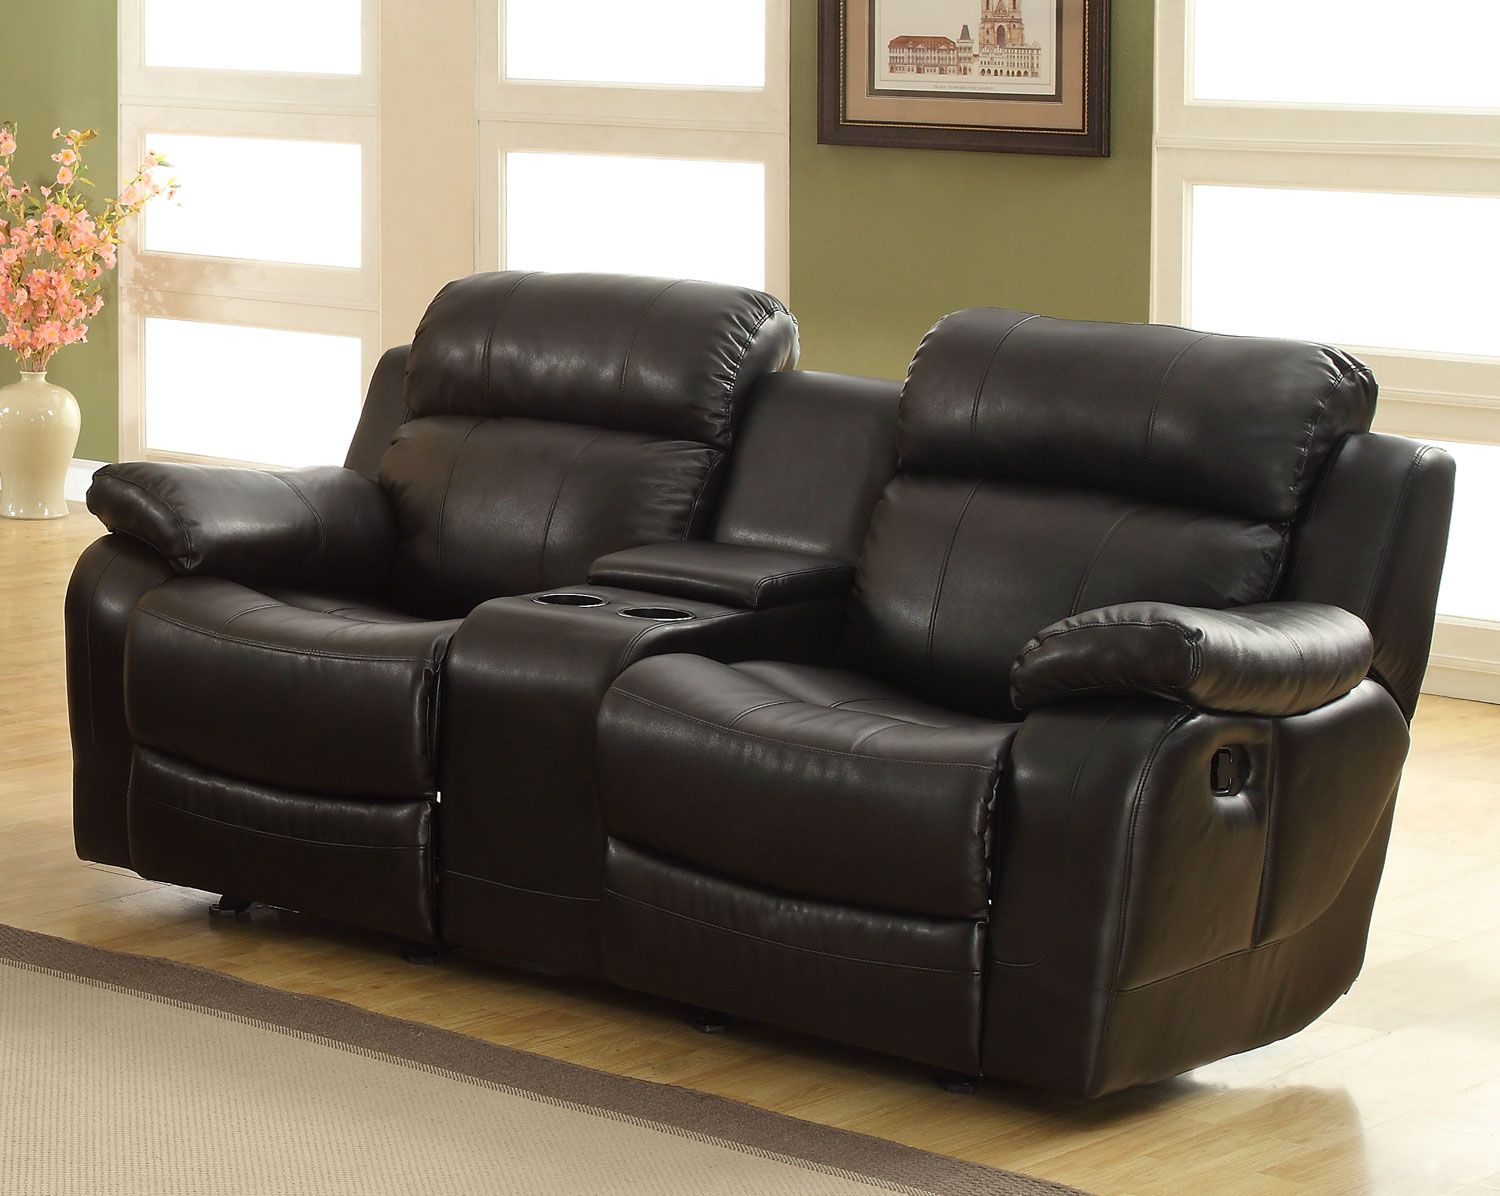 Overstuffed Couch Homelegance Marille Love Seat Glider Recliner With Center